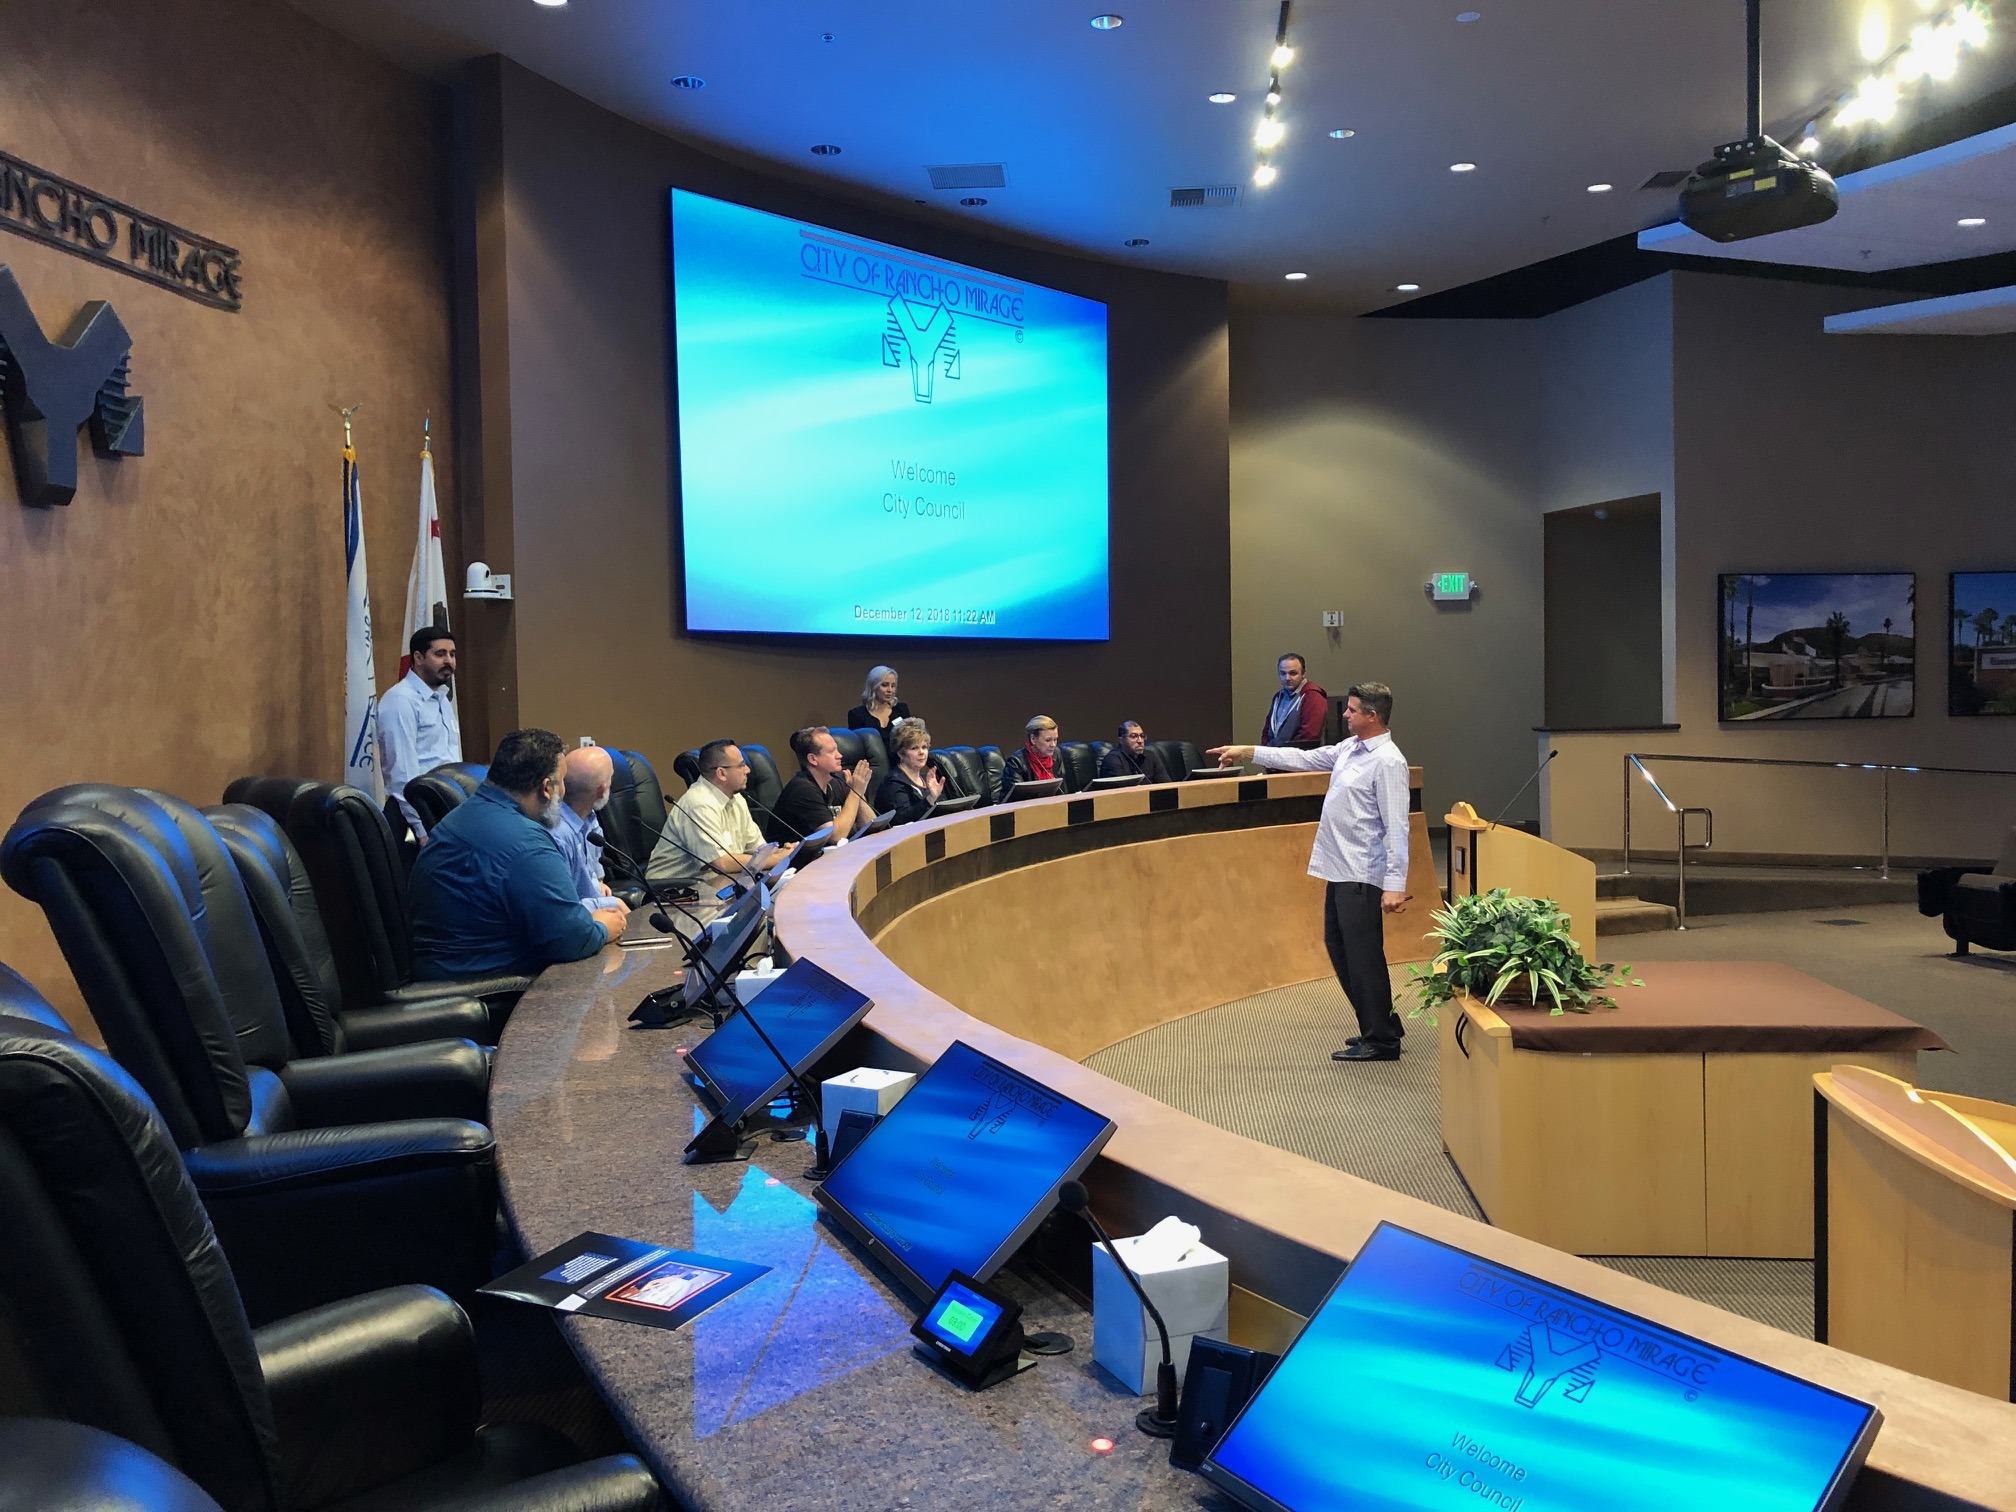 Western Audio Visual Technology Showcase: Rancho Mirage Council Chamber